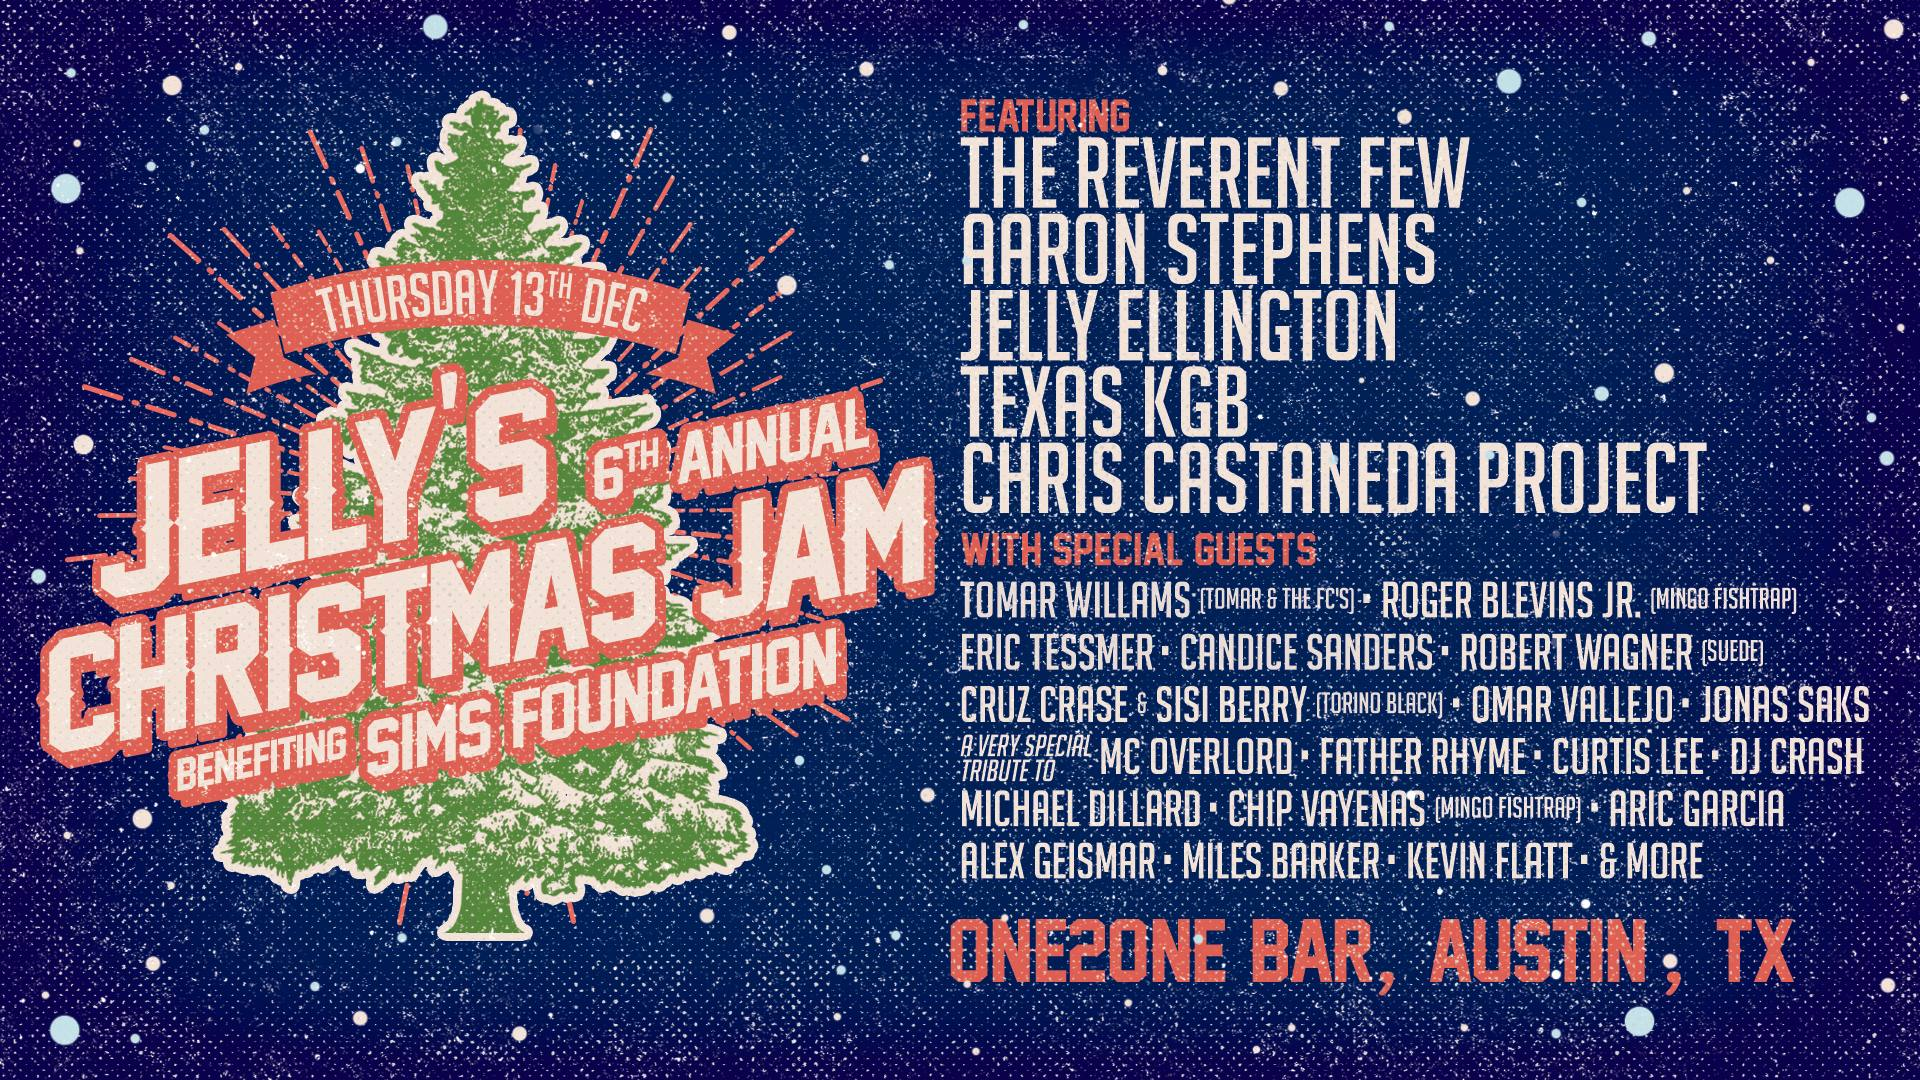 Official Lineup for Jelly's 6th Annual Christmas Jam Benefit - SIMS Foundation